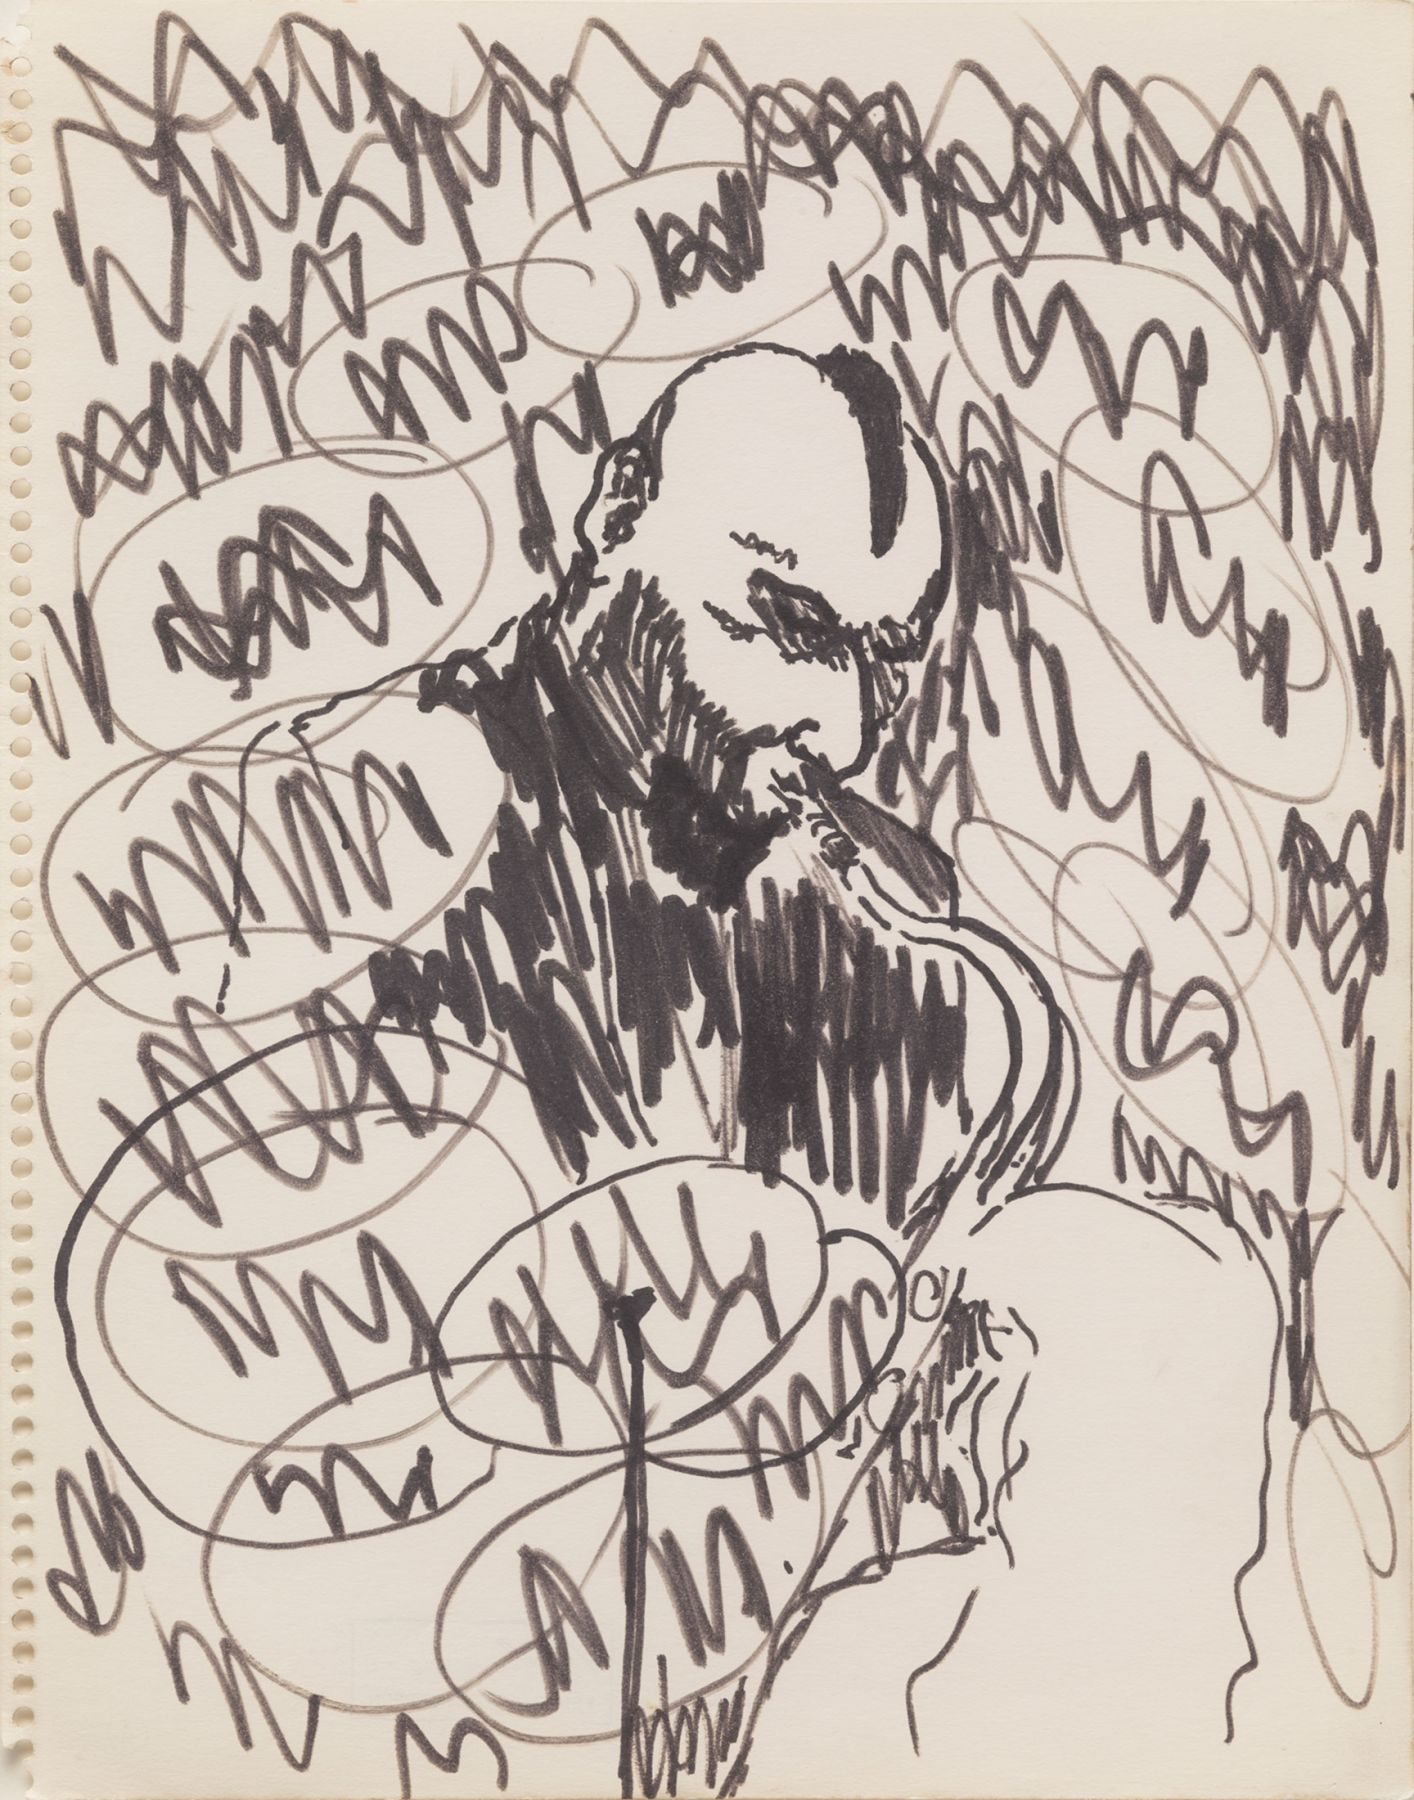 Bob Thompson, Untitled (Sonny Rollins at the Five Spot), c.1964-65